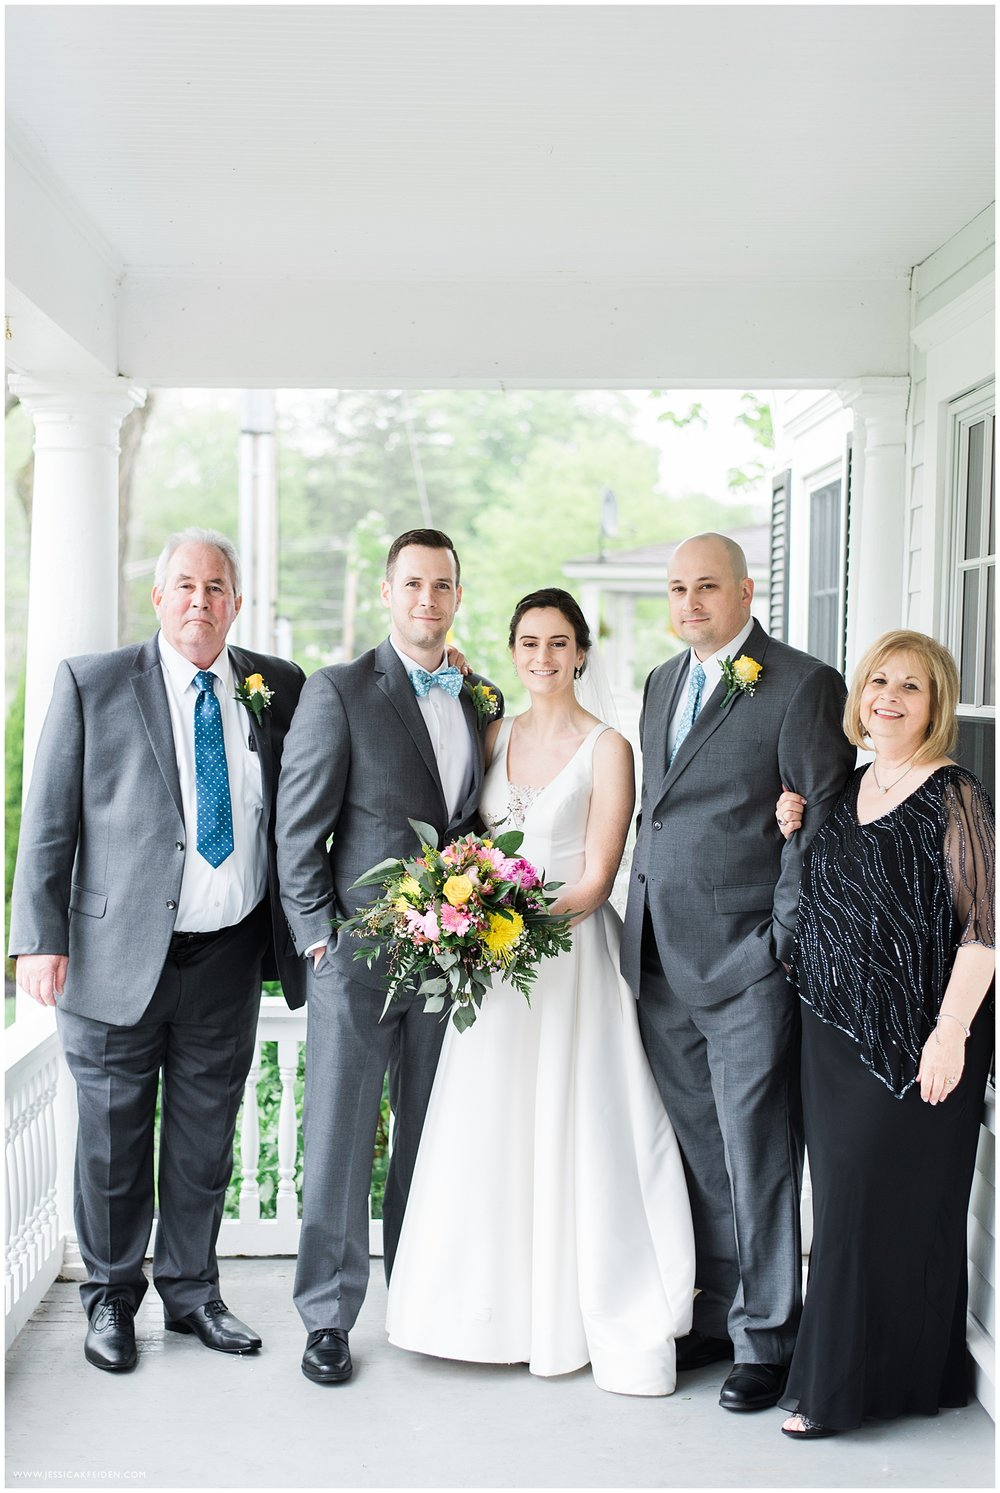 Jessica K Feiden Photography_Publick House Inn Wedding Photographer_0060.jpg